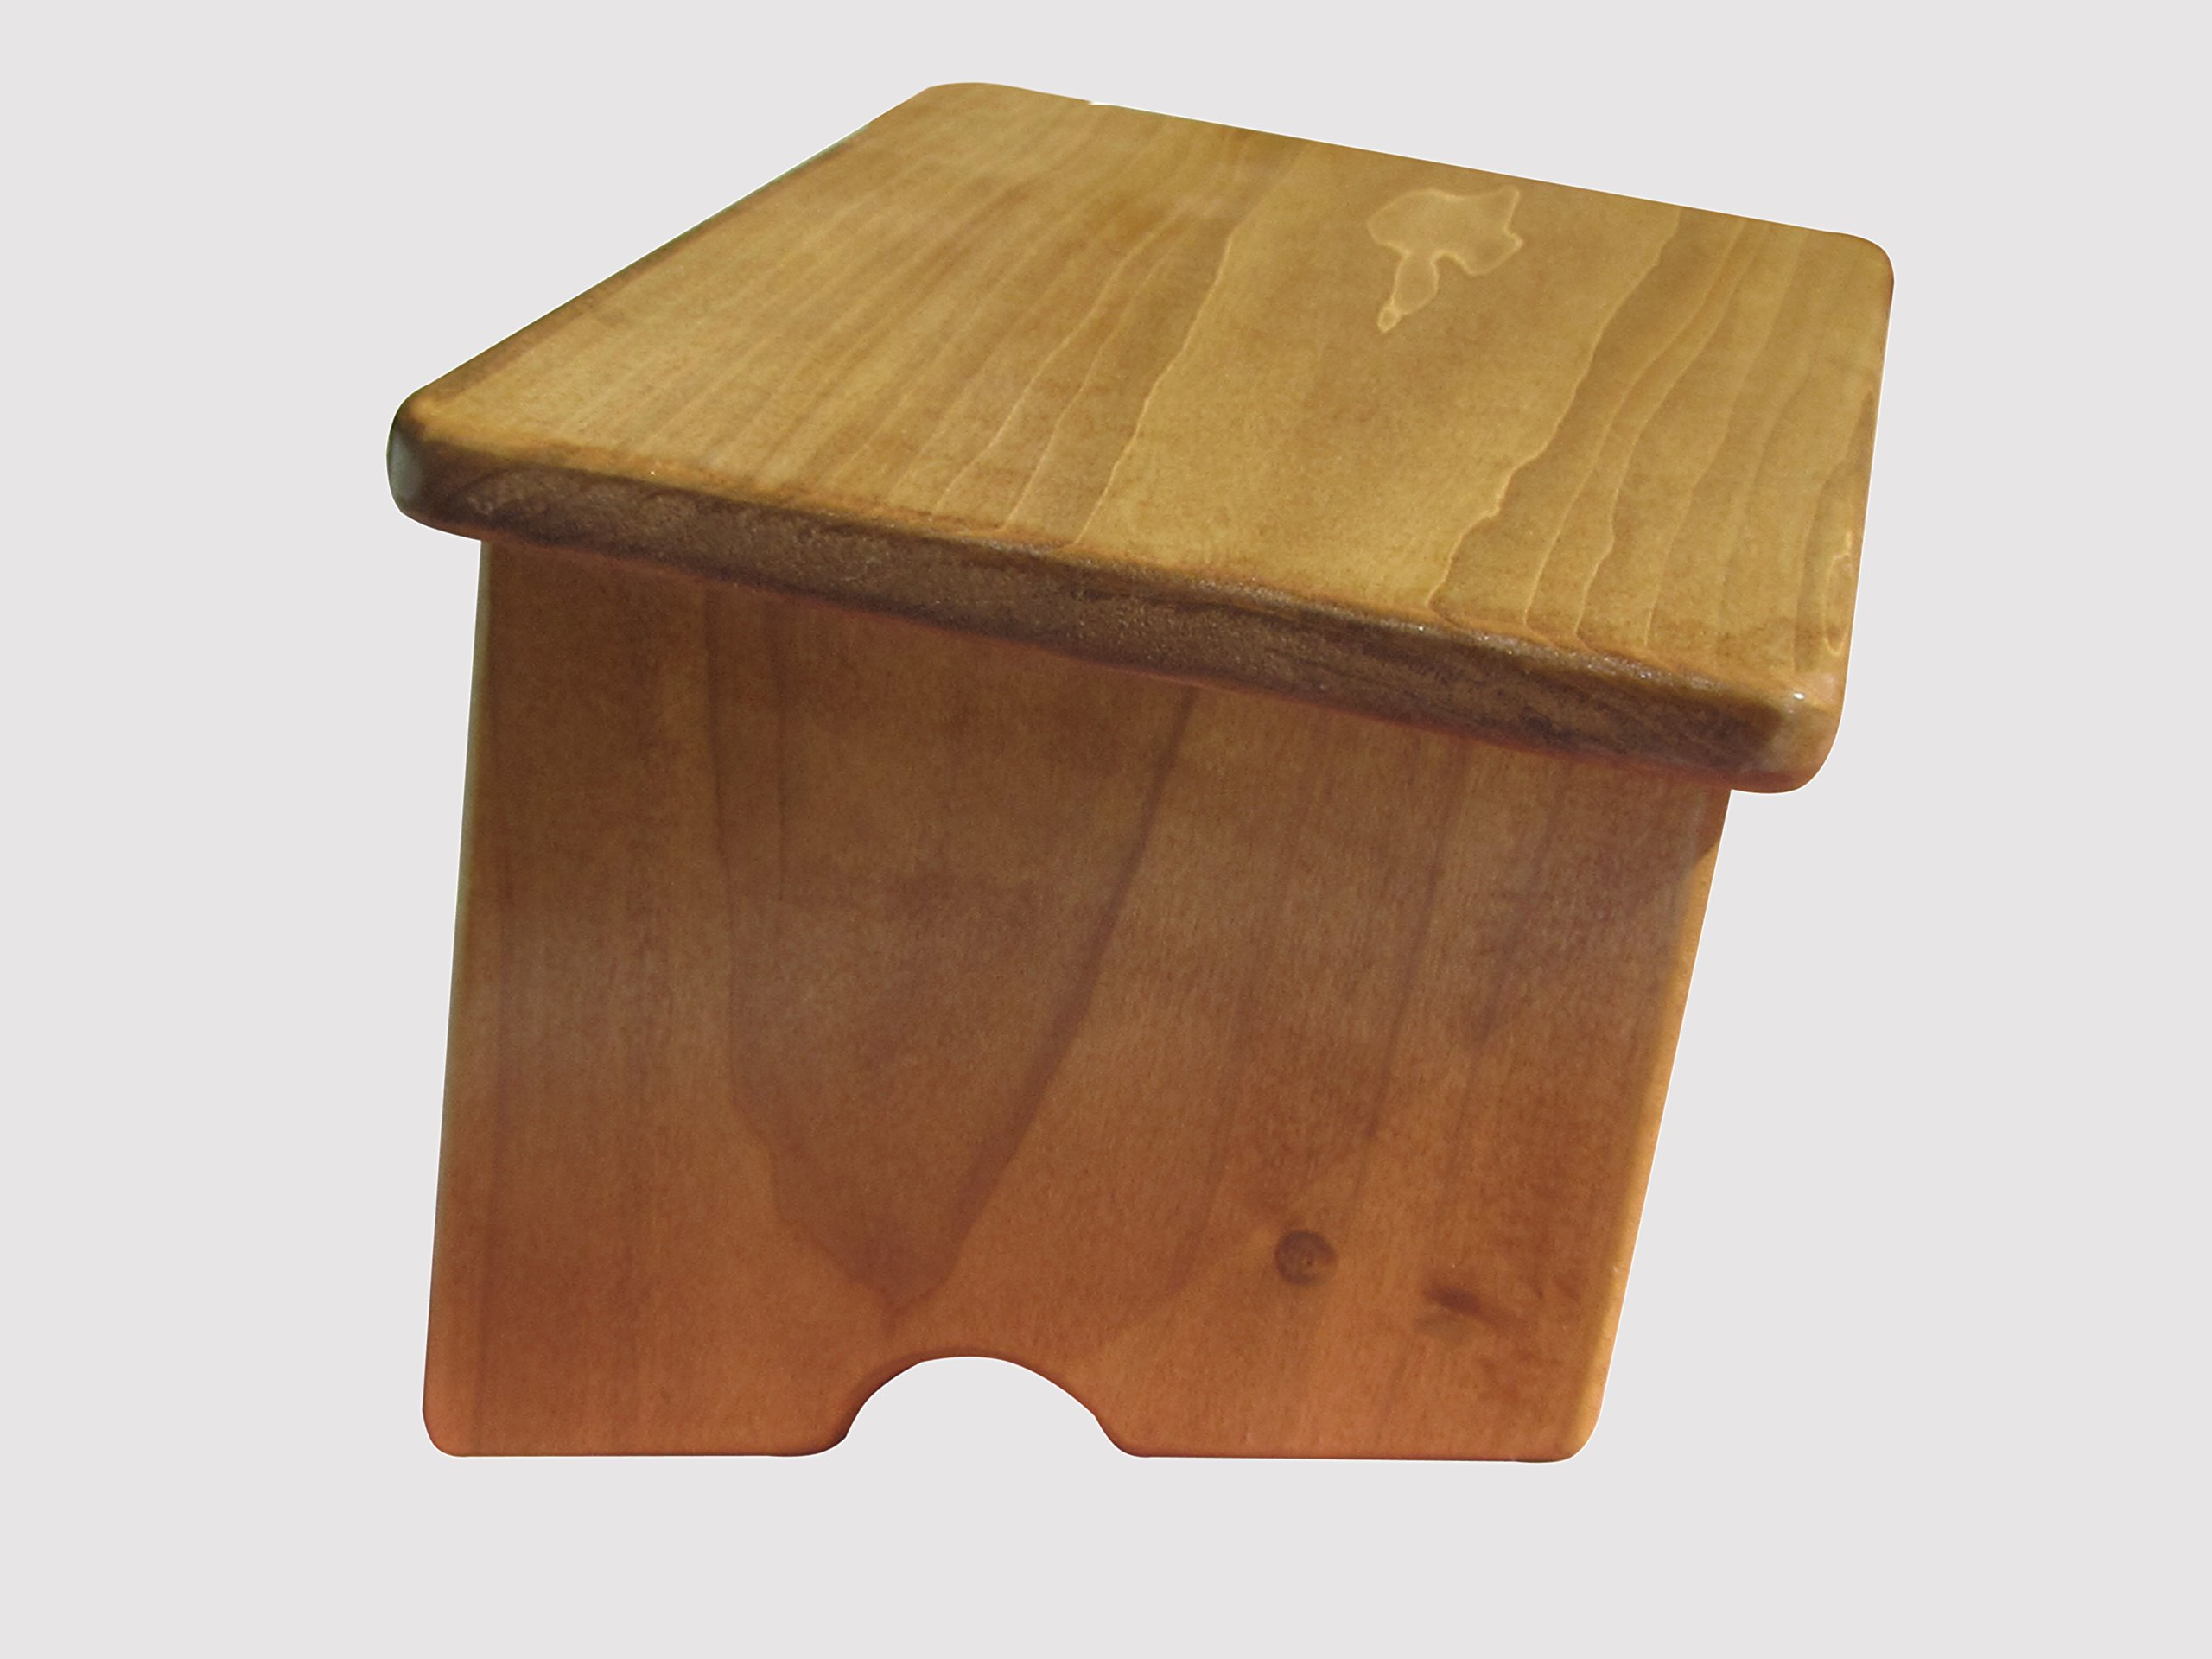 Nursing Foot Stool 6'' Tall Poplar Wood (Made in the USA) (Maple Stain)